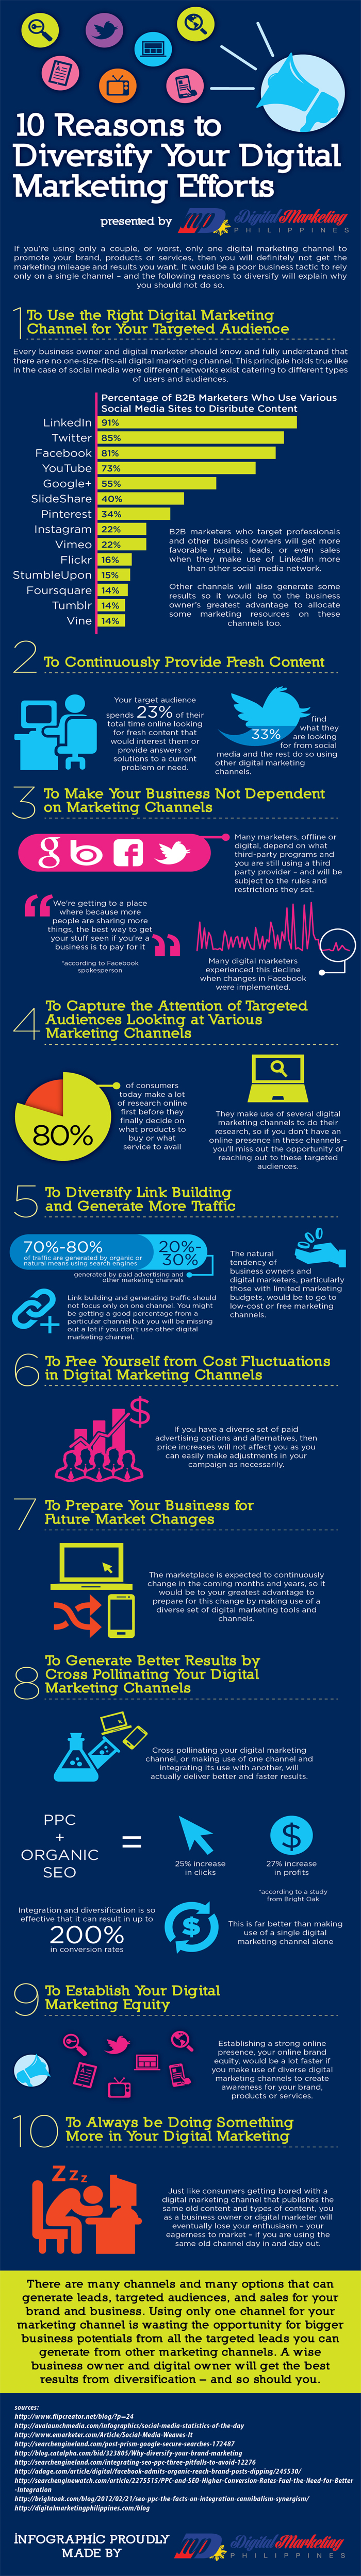 10 Reasons to Diversify Your Digital Marketing Efforts